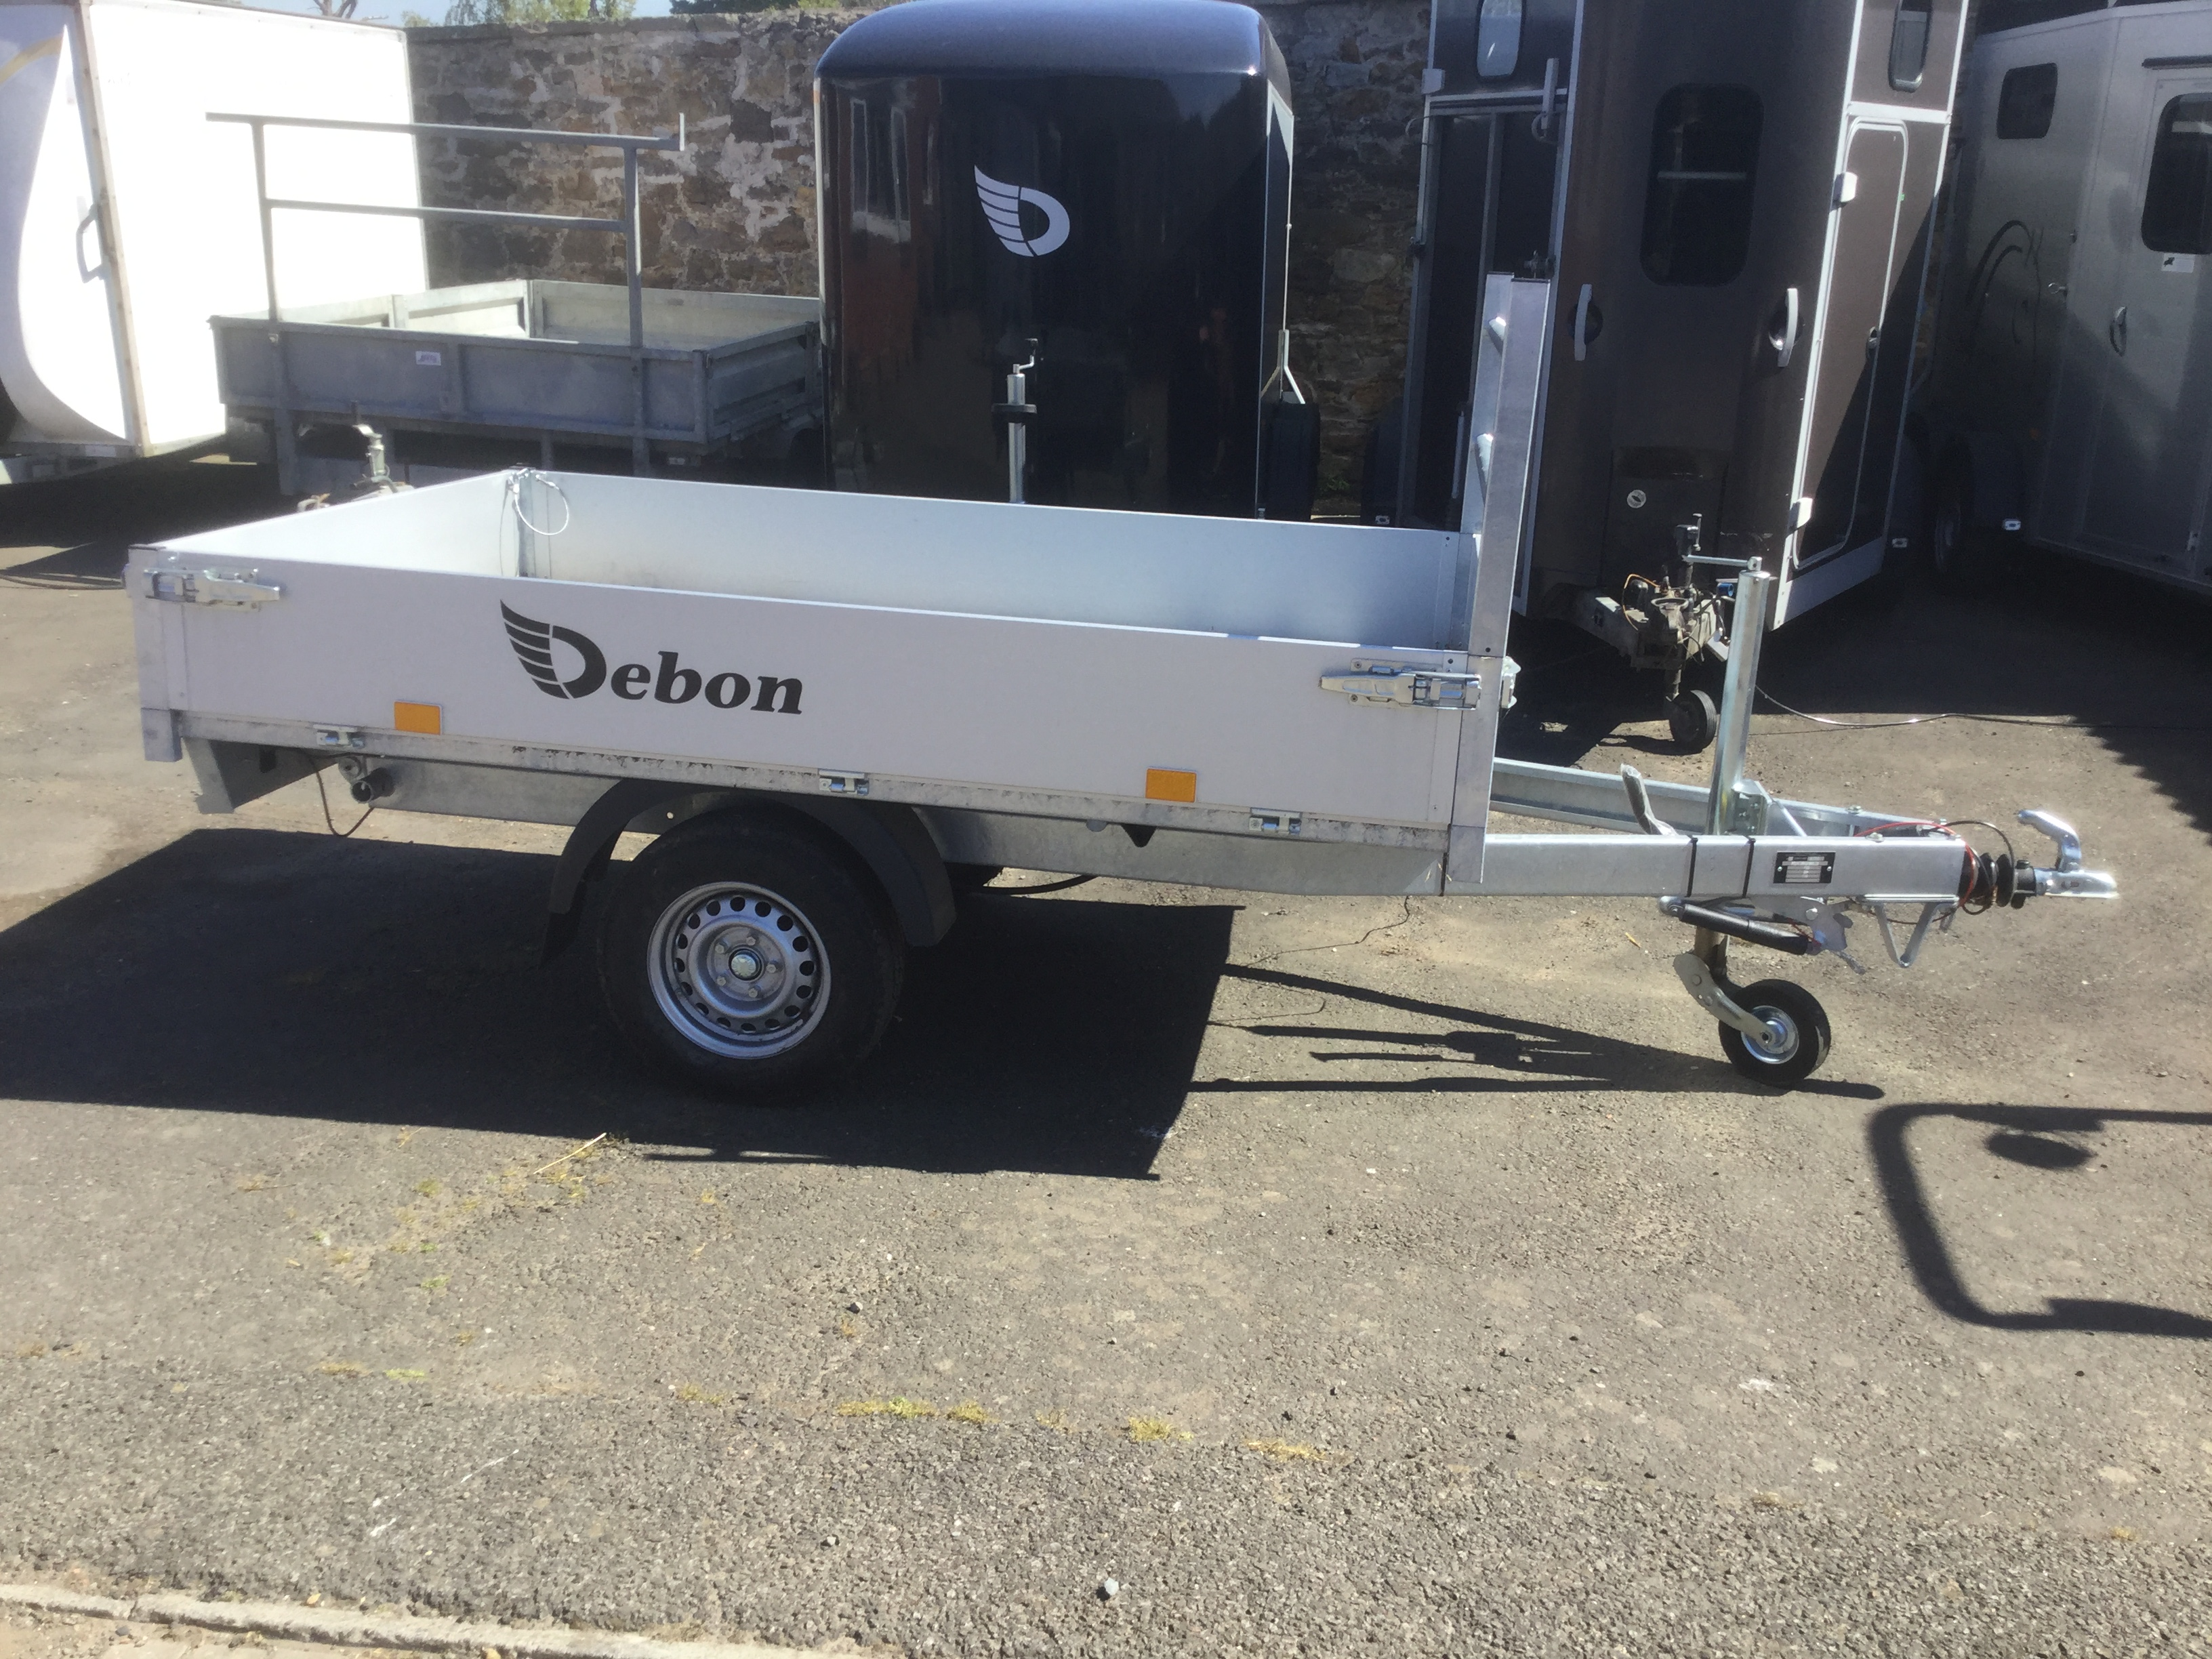 Debon single axle tipper